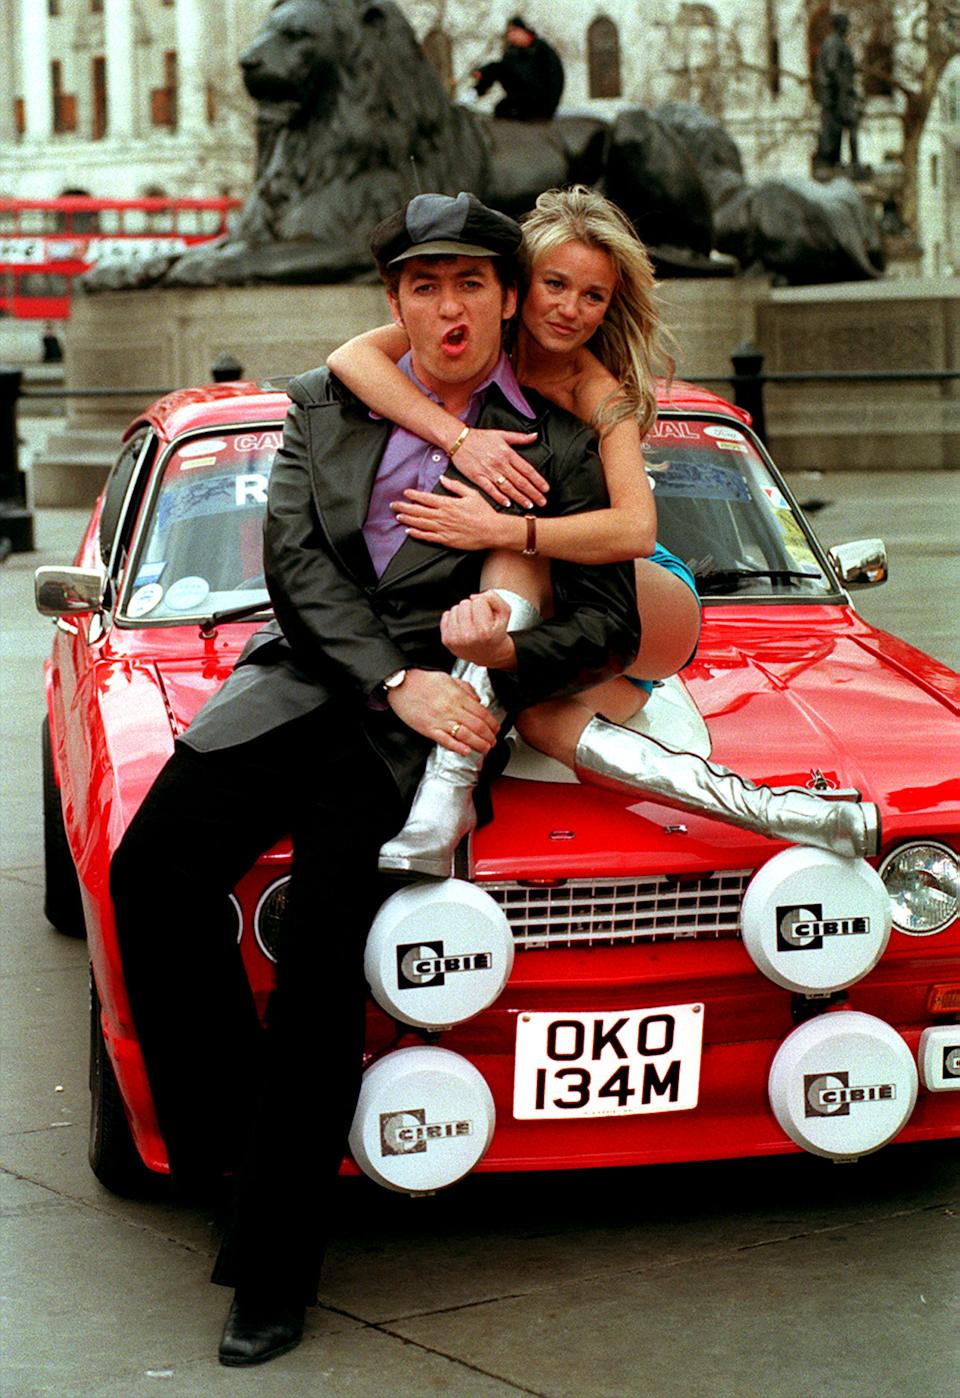 "PA NEWS PHOTO 11/3/98  SHANE Richie AND A FELLOW CAST MEMBER PROMOTE THE NEW MUSICAL ""BOOGIE NIGHTS"" AT A PHOTOCALL IN LONDON'S TRAFALGAR SQUARE.   (Photo by PA Images via Getty Images)"